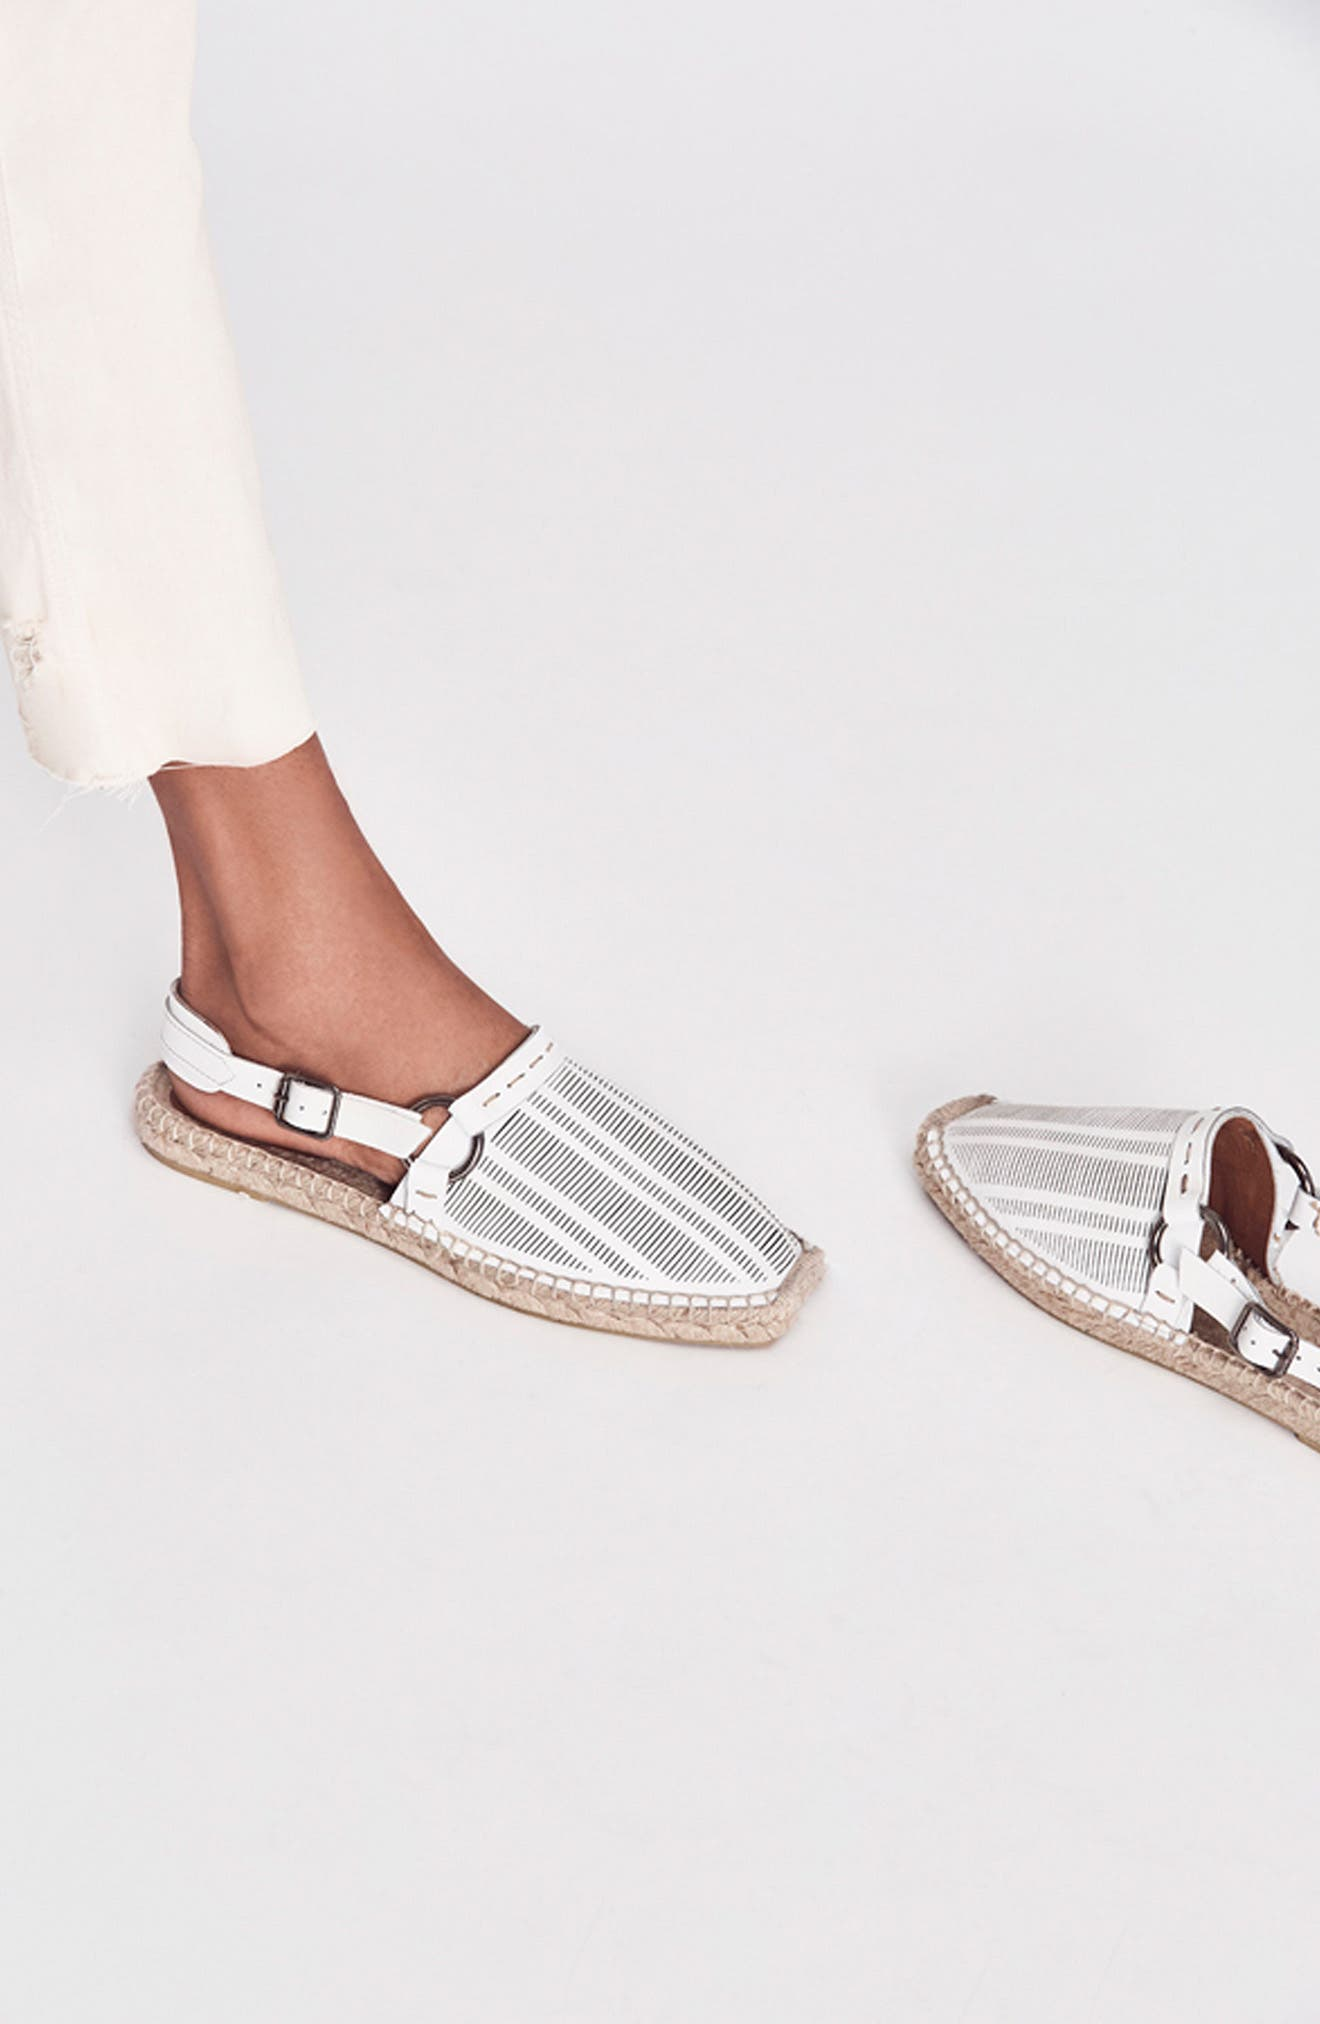 FREE PEOPLE,                             Cabo Espadrille Flat,                             Alternate thumbnail 10, color,                             001